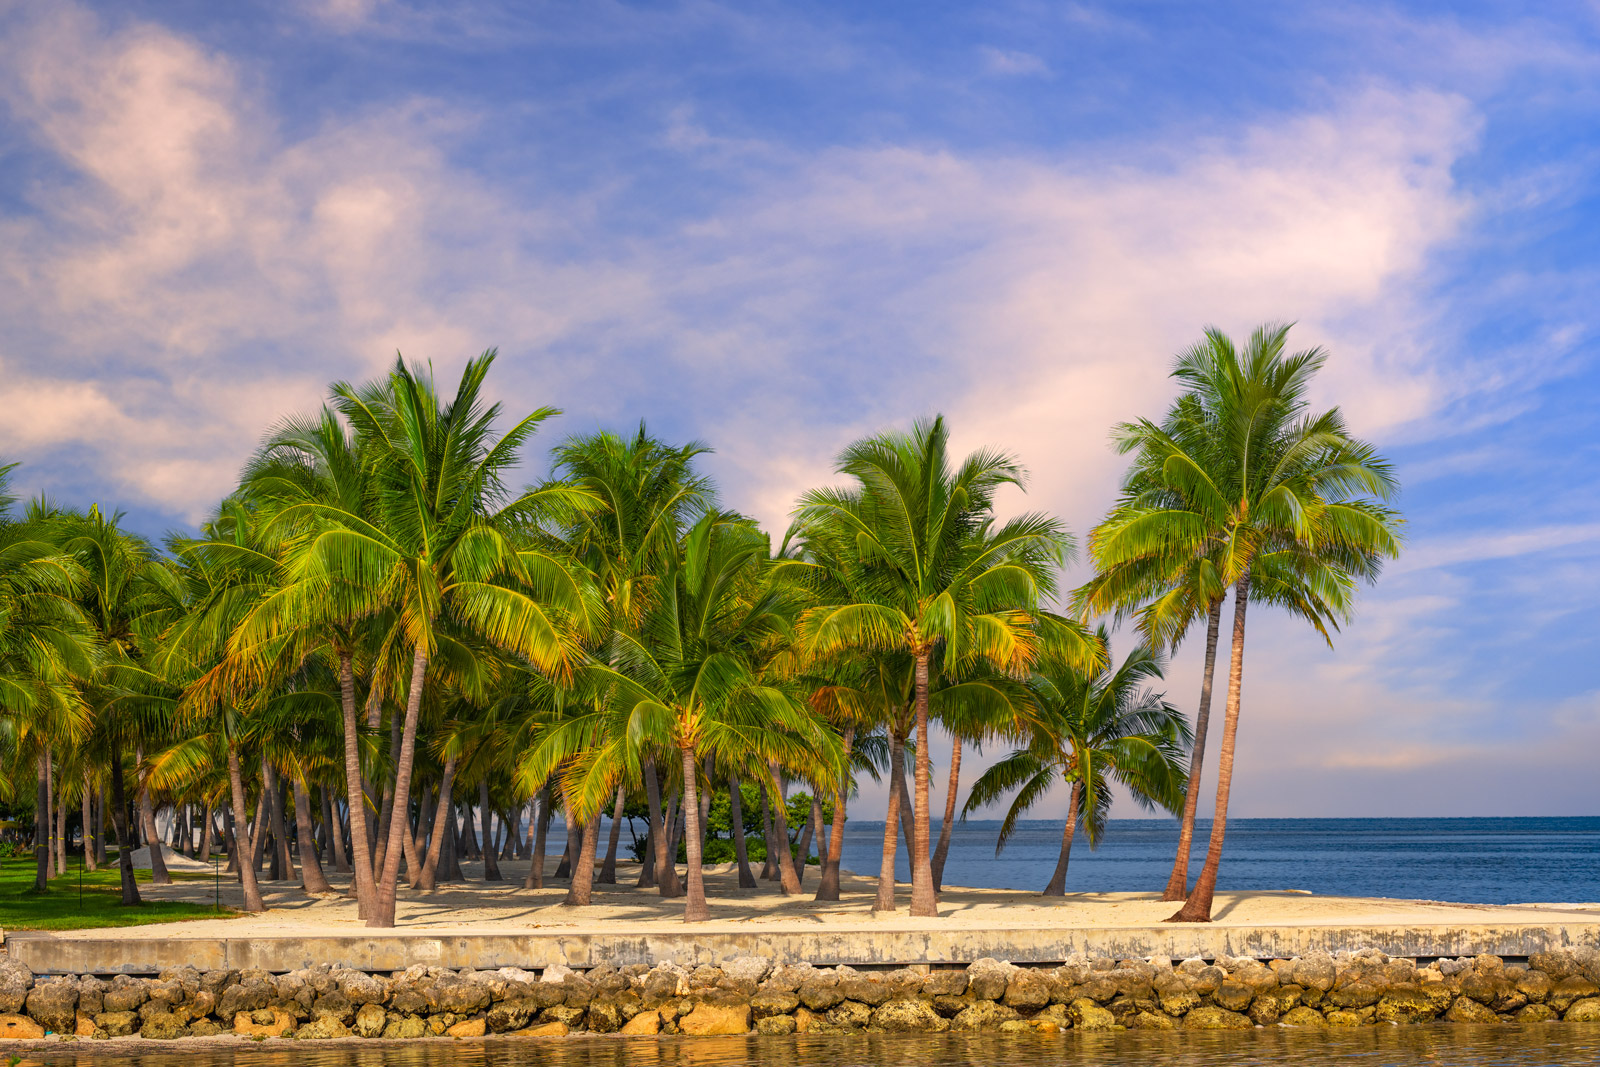 A Limited Edition, Fine Art photograph of palm trees in late day light on the islands of the Florida Keys. Available as a Fine...